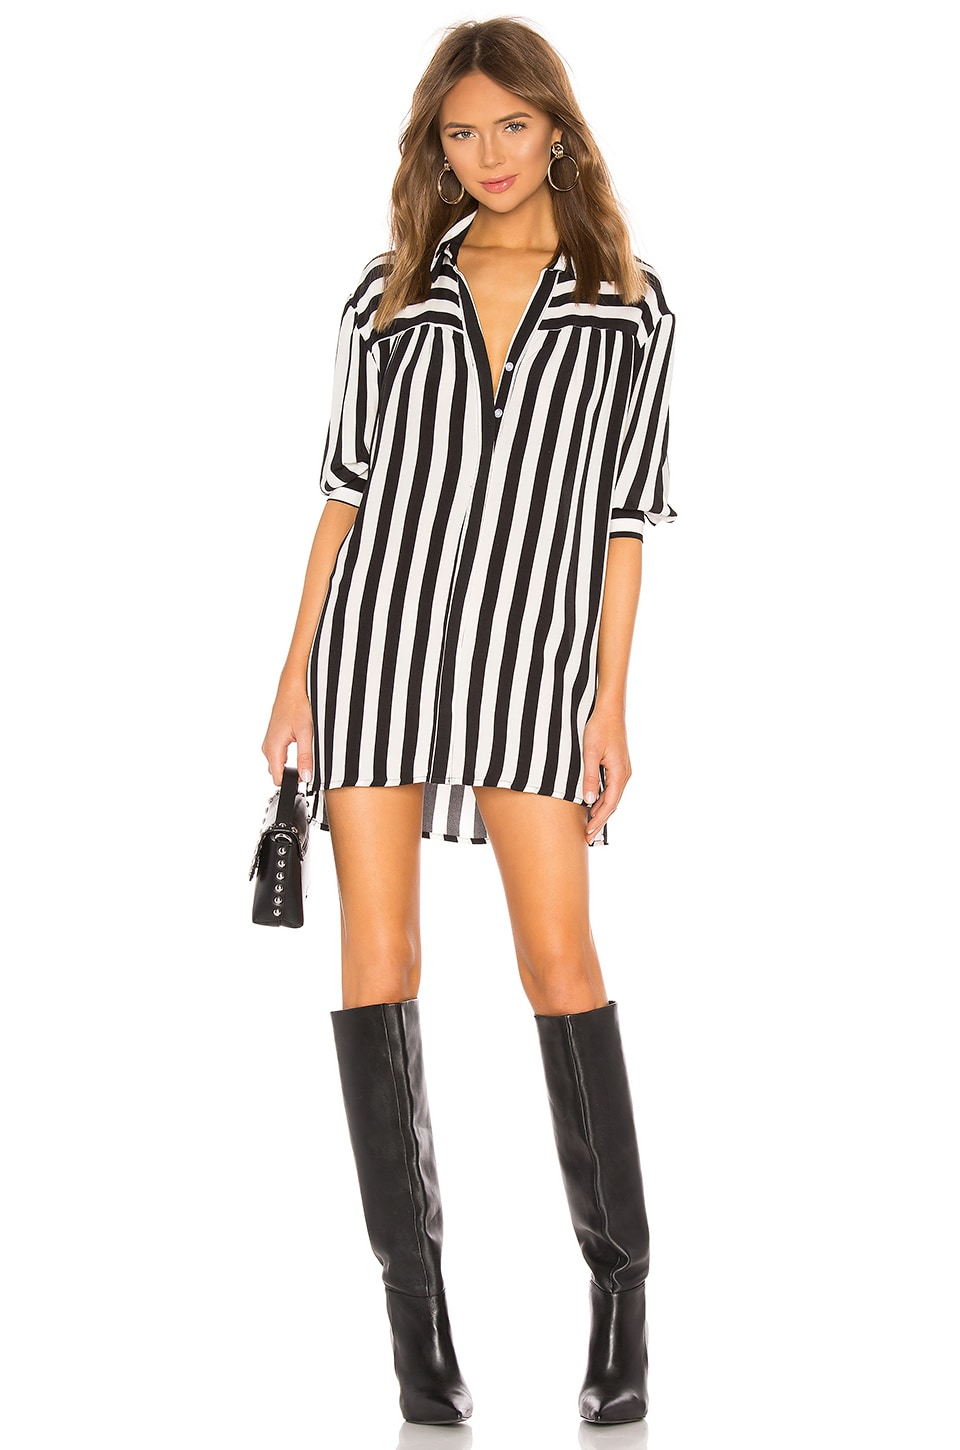 Lovers + Friends Kay Shirt Dress in Black & White